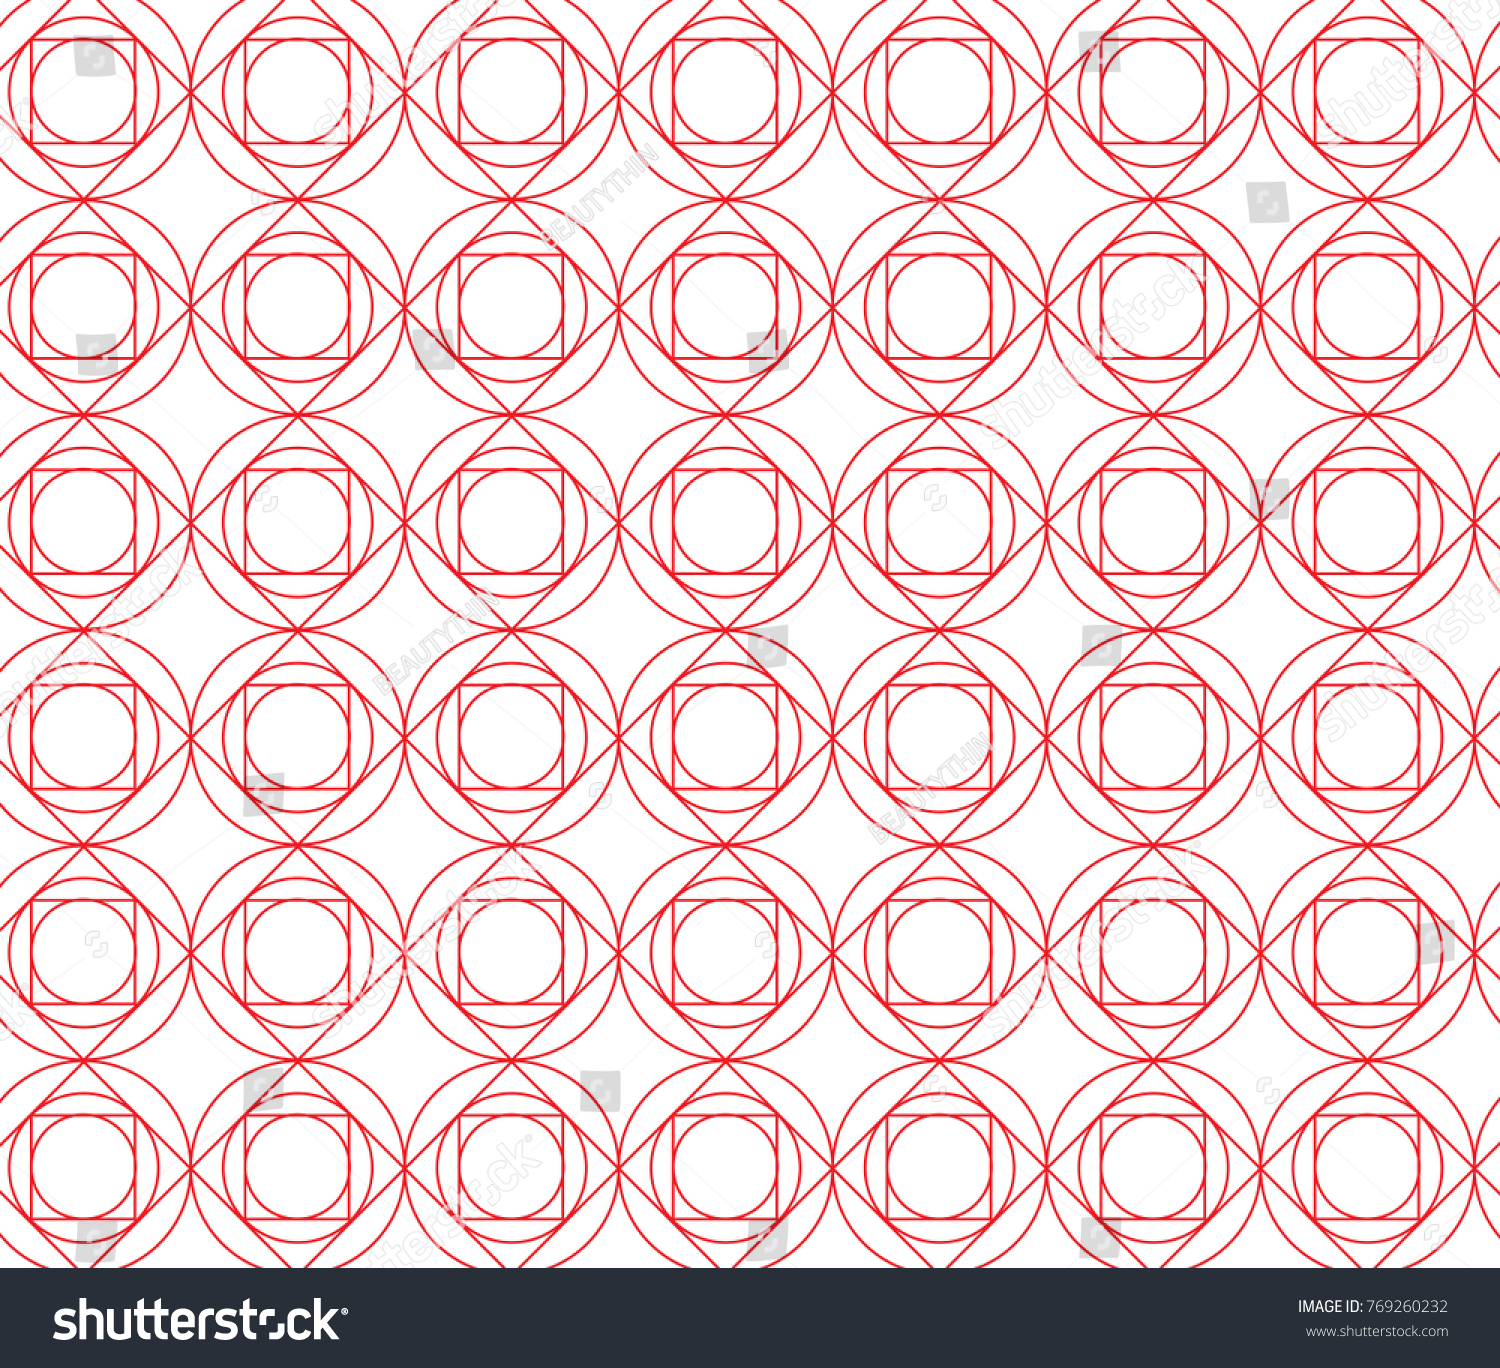 rose image stock background seamless rounded pattern vector diamond